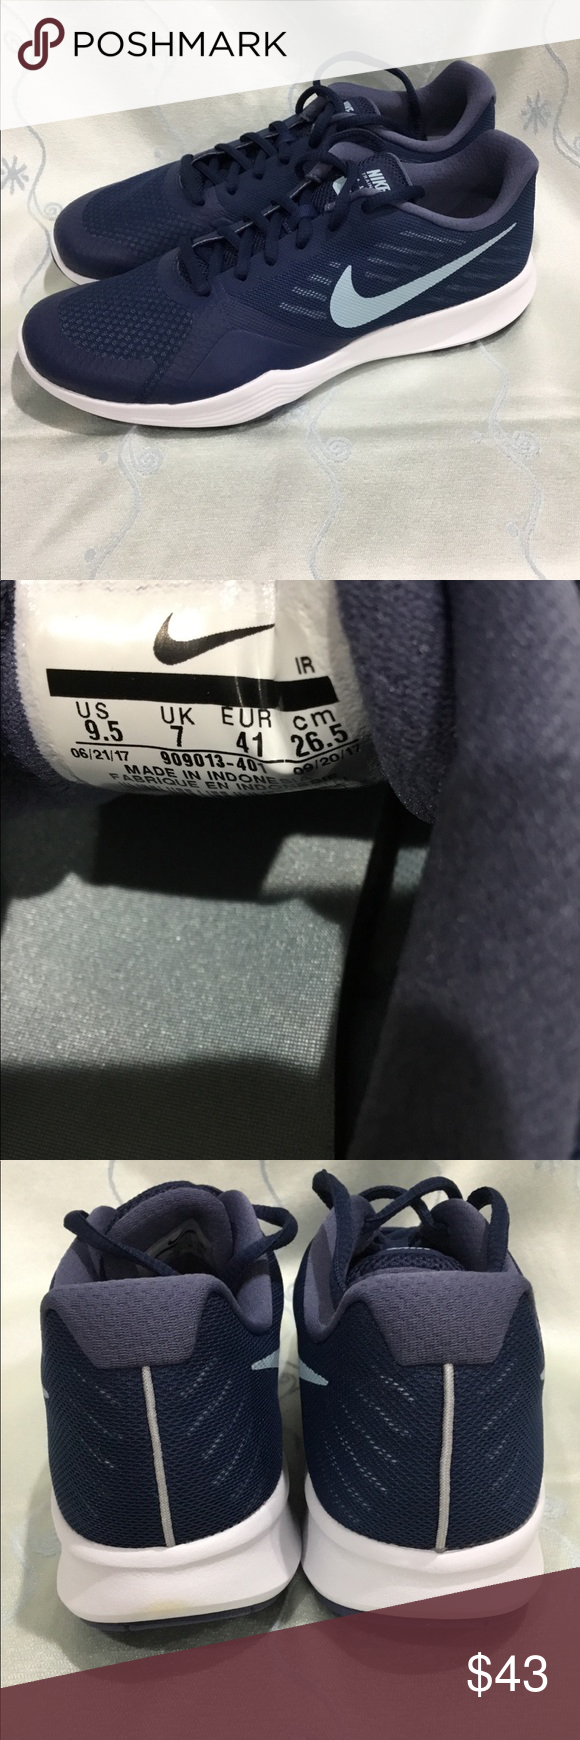 Nike Women s City Trainer training shoes Brand new without box Nike Women s  City Trainer training shoes. Padded collar 406f3b603